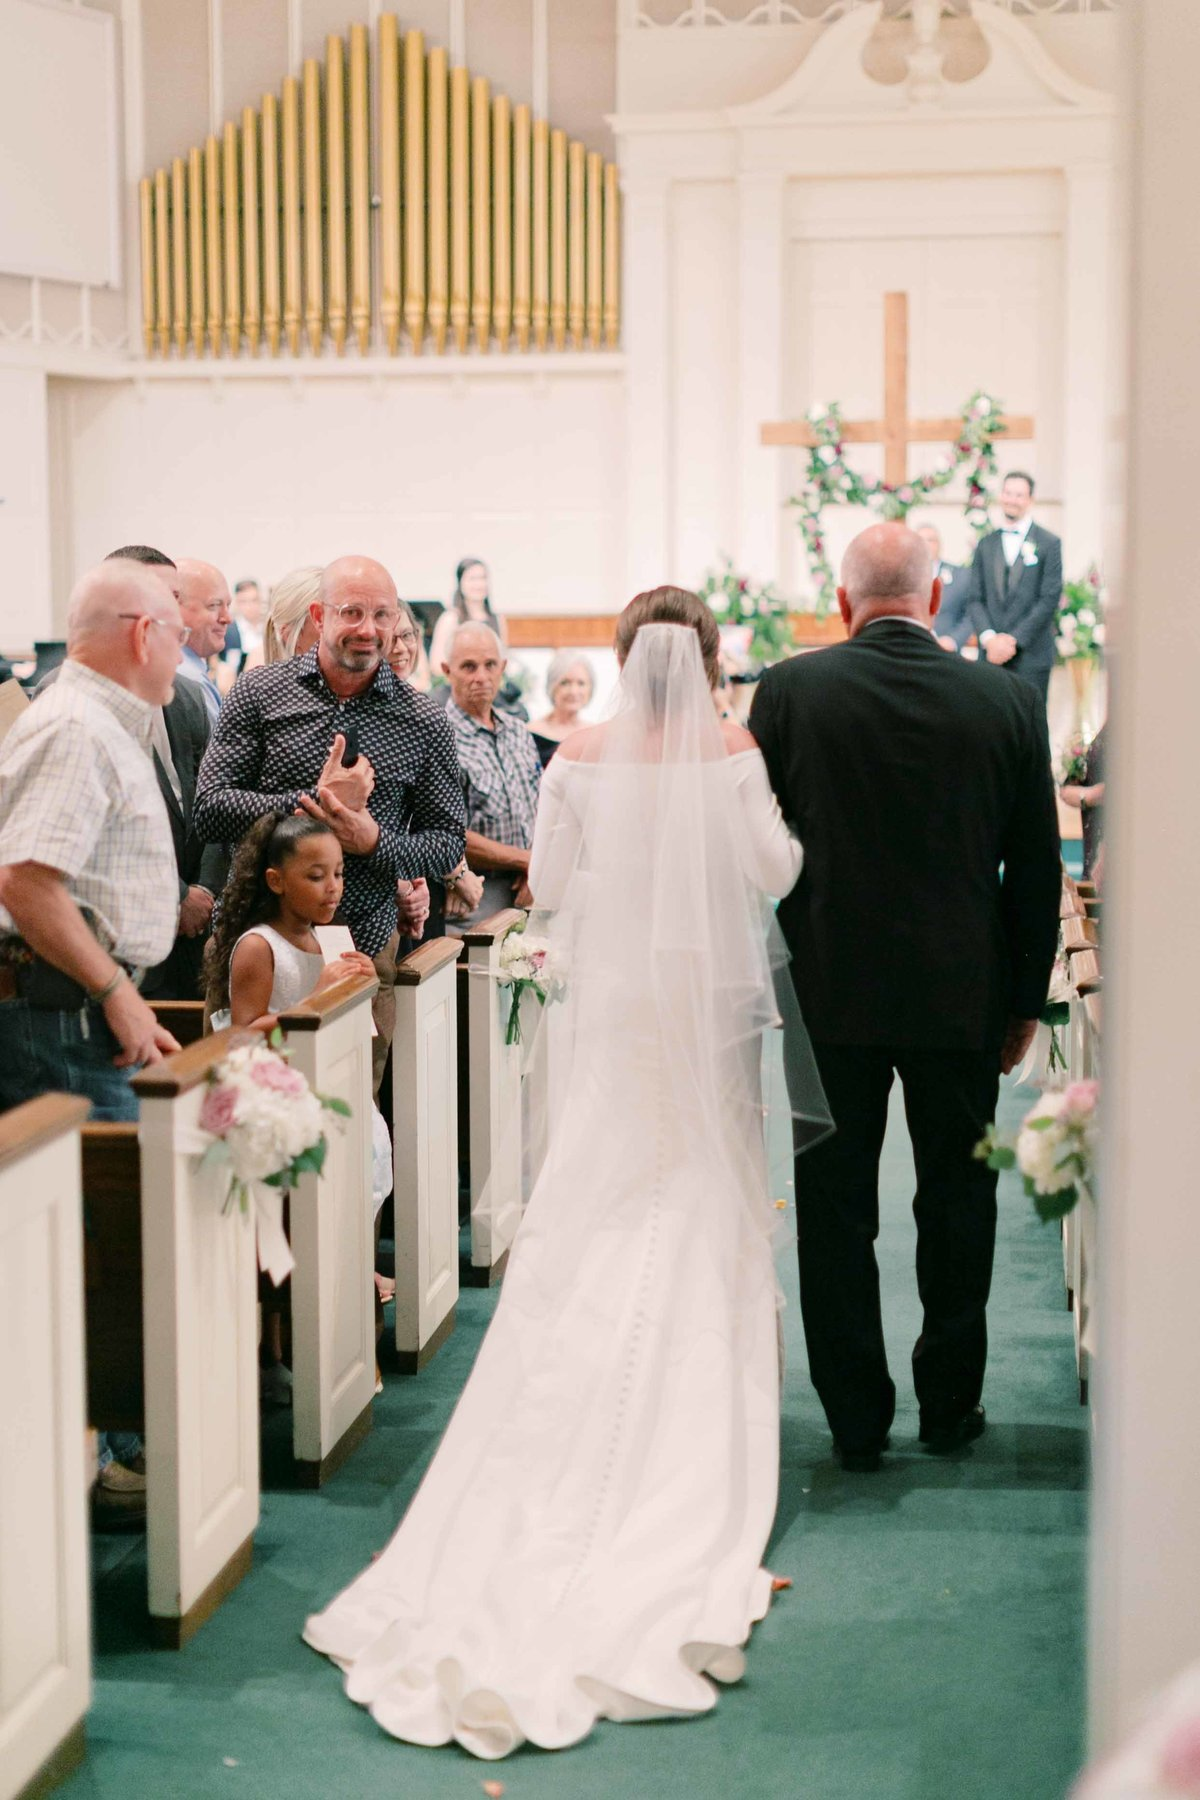 Angel_owens_photography_wedding_oliviarobert117